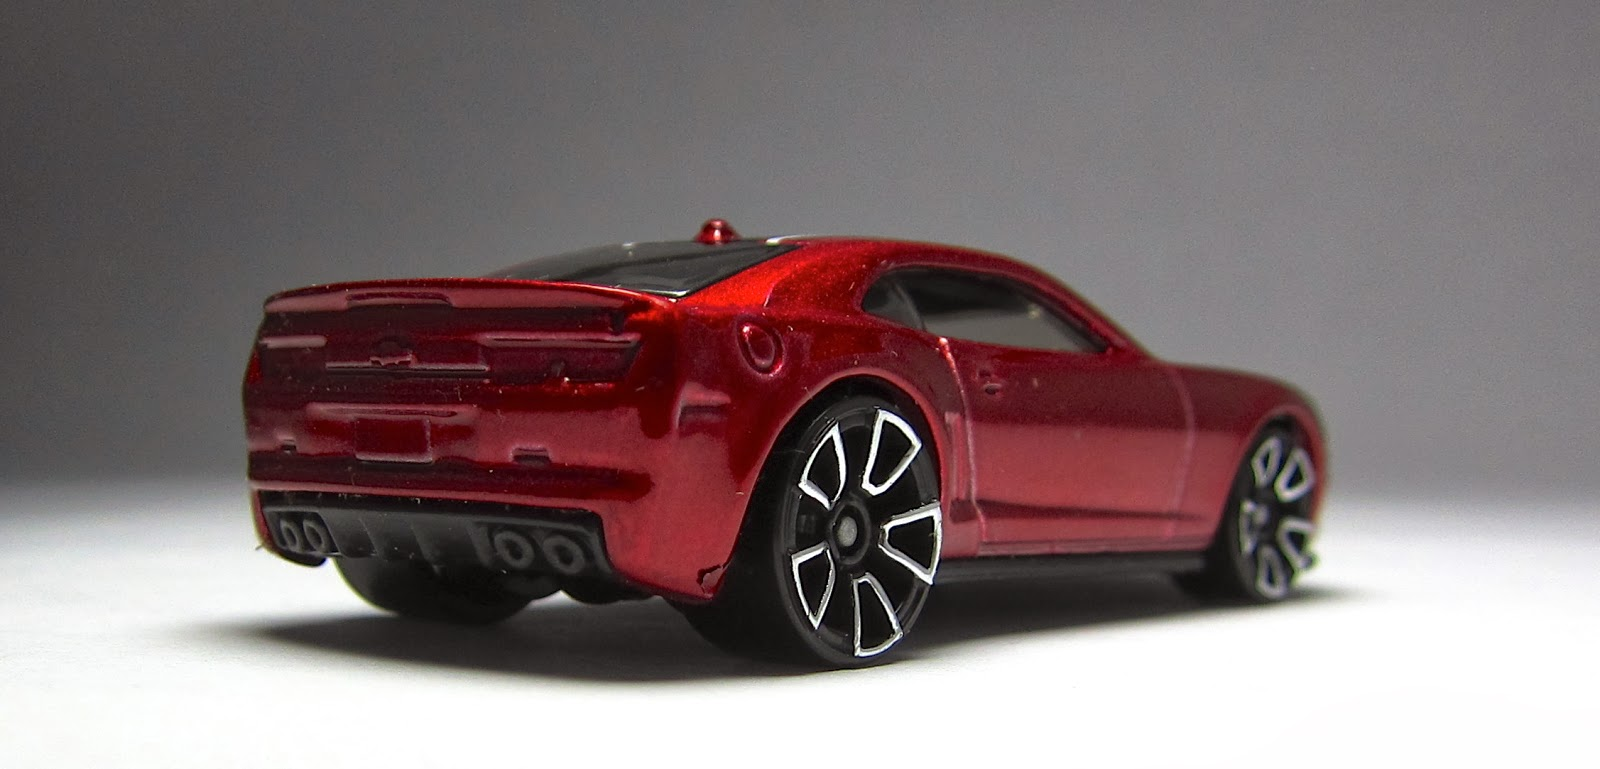 First Look 2014 Hot Wheels Chevy Camaro Special Edition Basic Amp Super Treasure Hunt